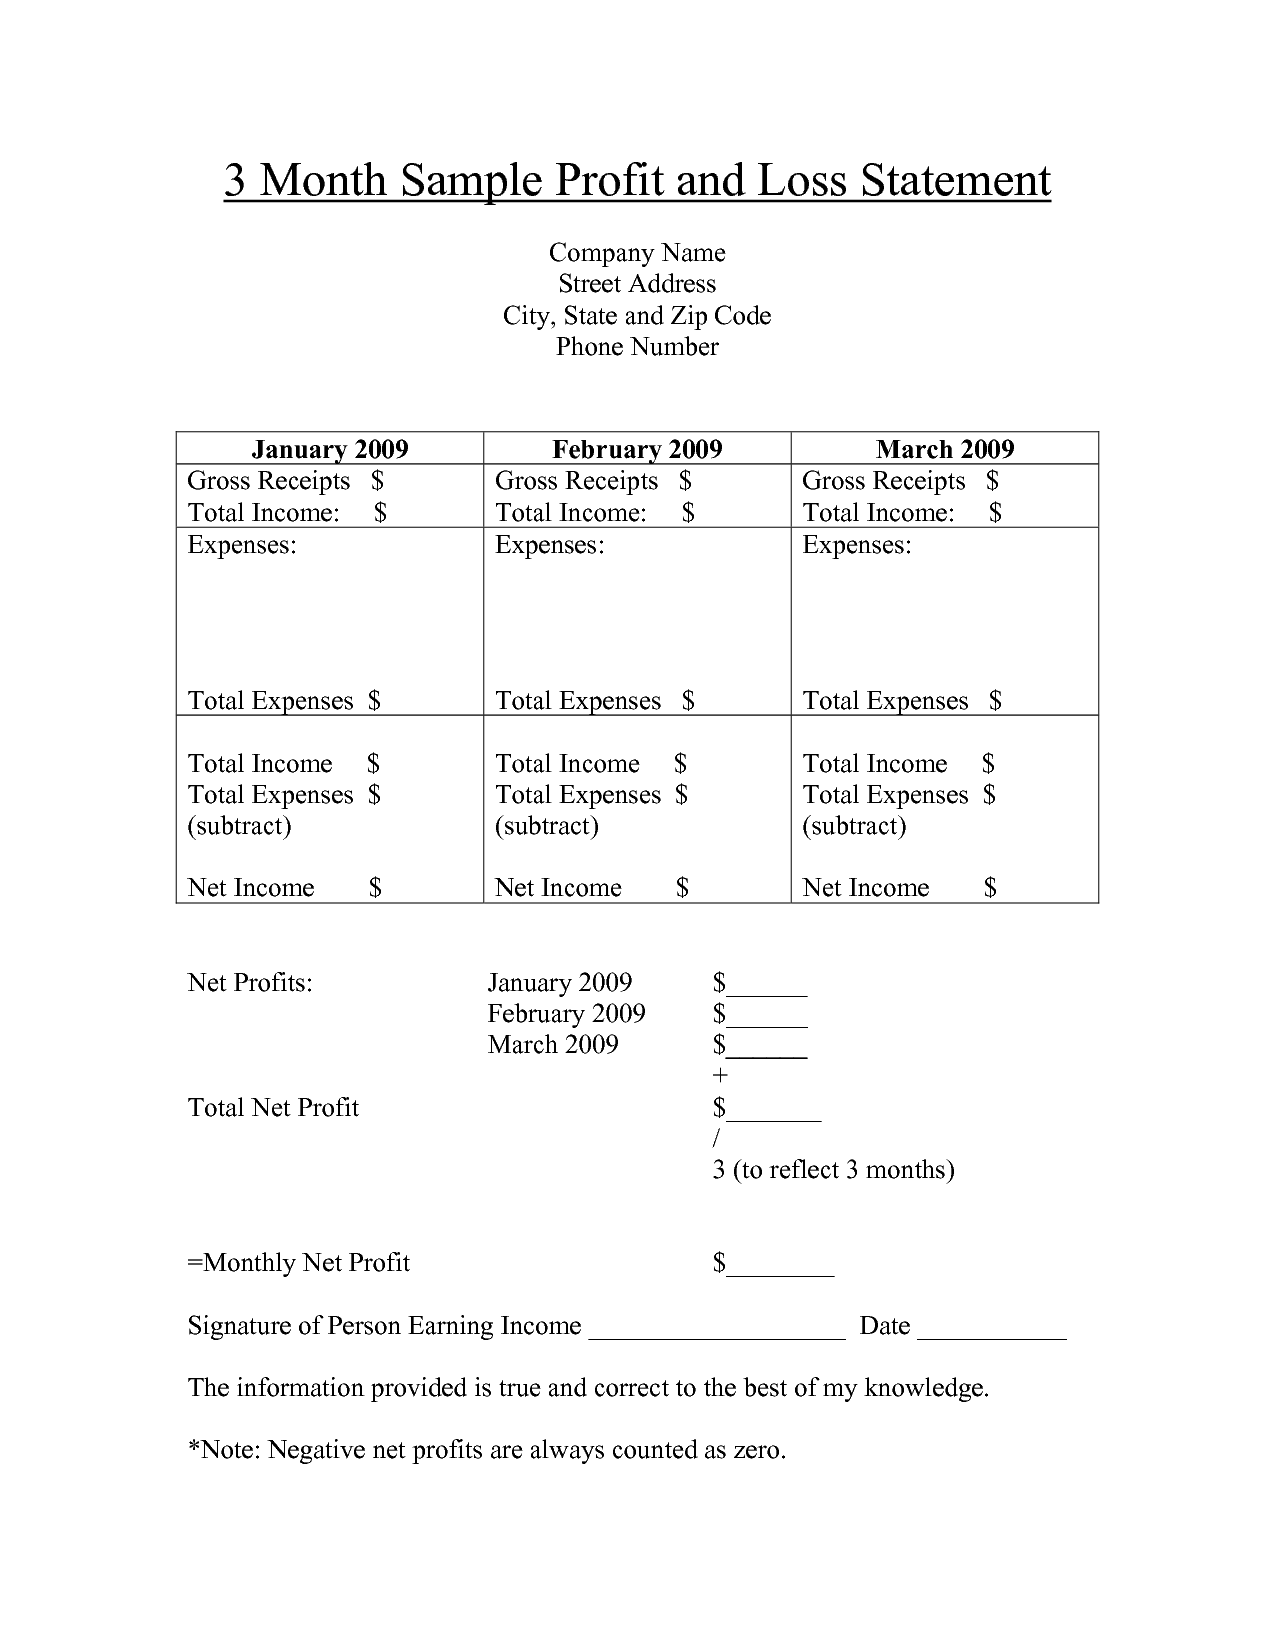 Doc460595 Quarterly Profit and Loss Statement Template Income – Profit and Loss Report Example